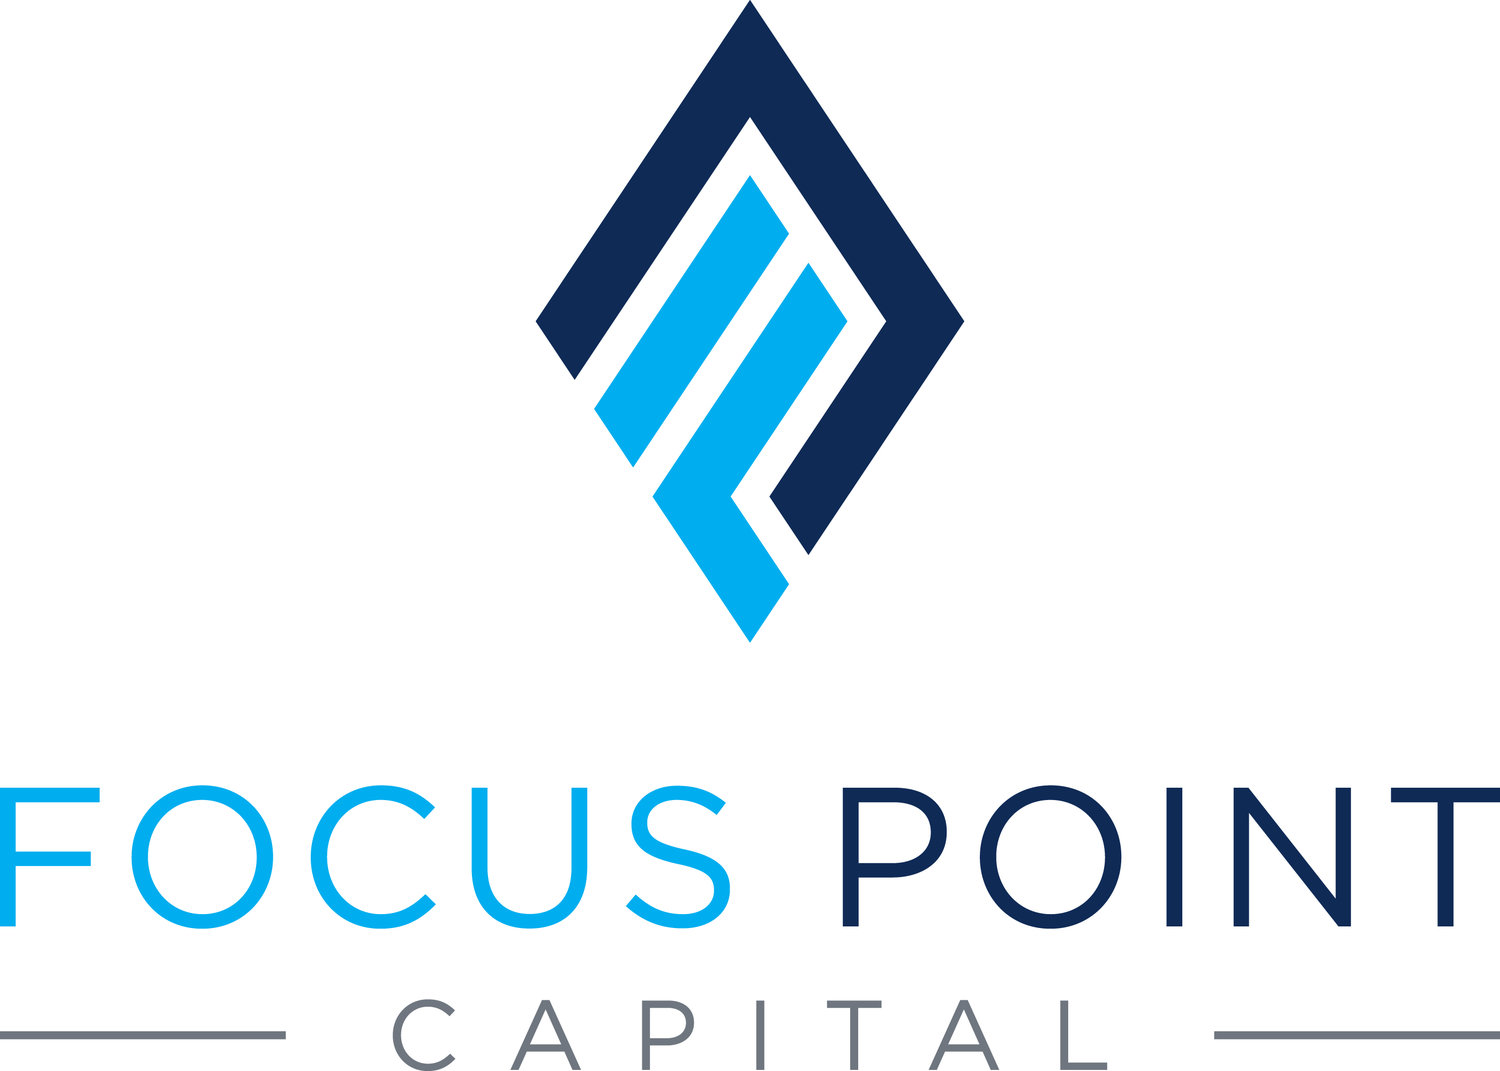 Focus Point Capital